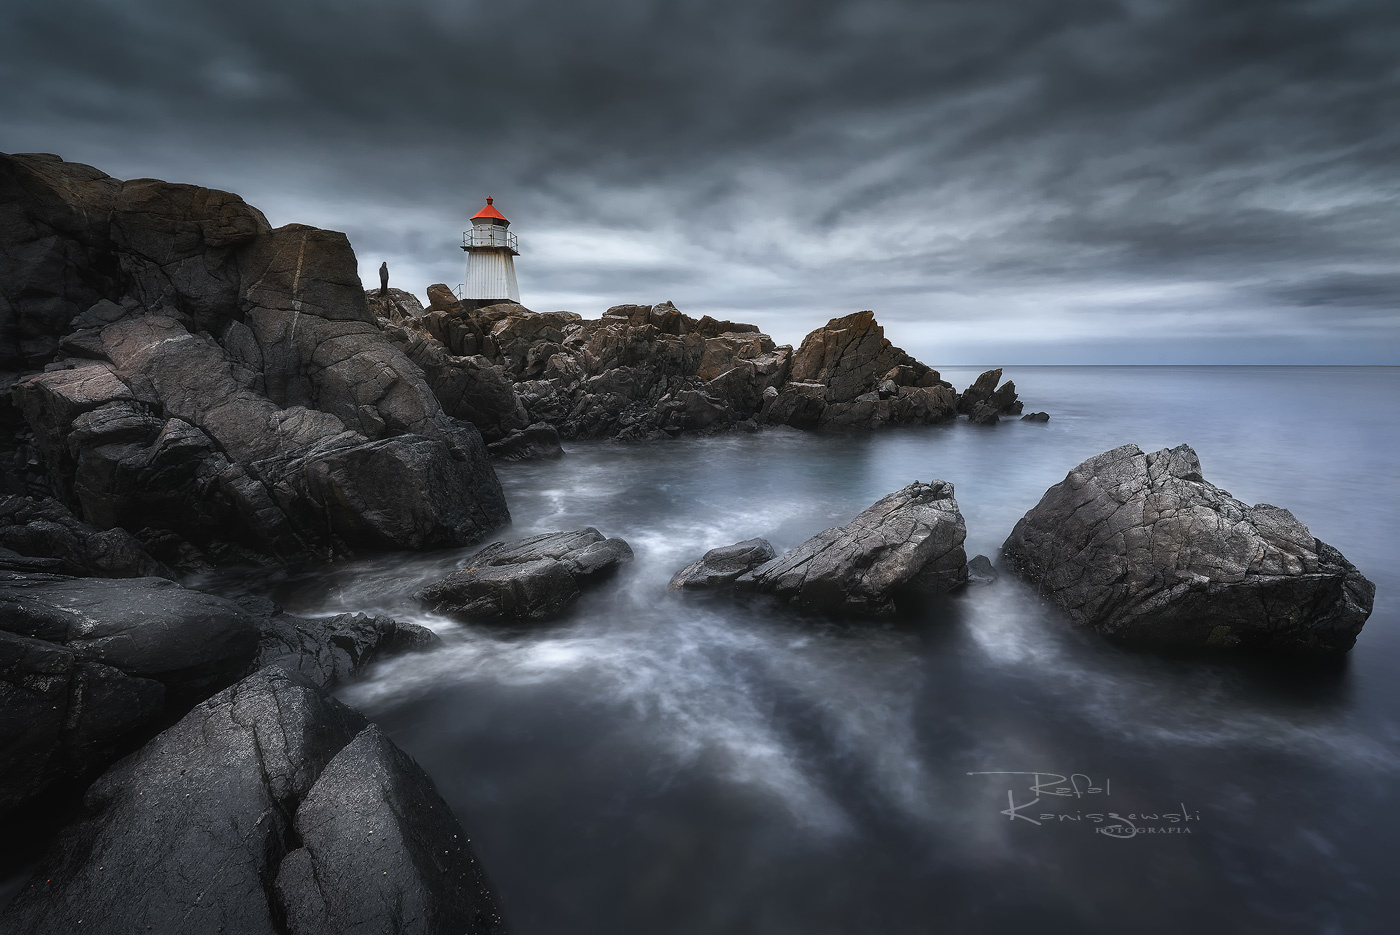 The man and lighthouse by Rafal Kani